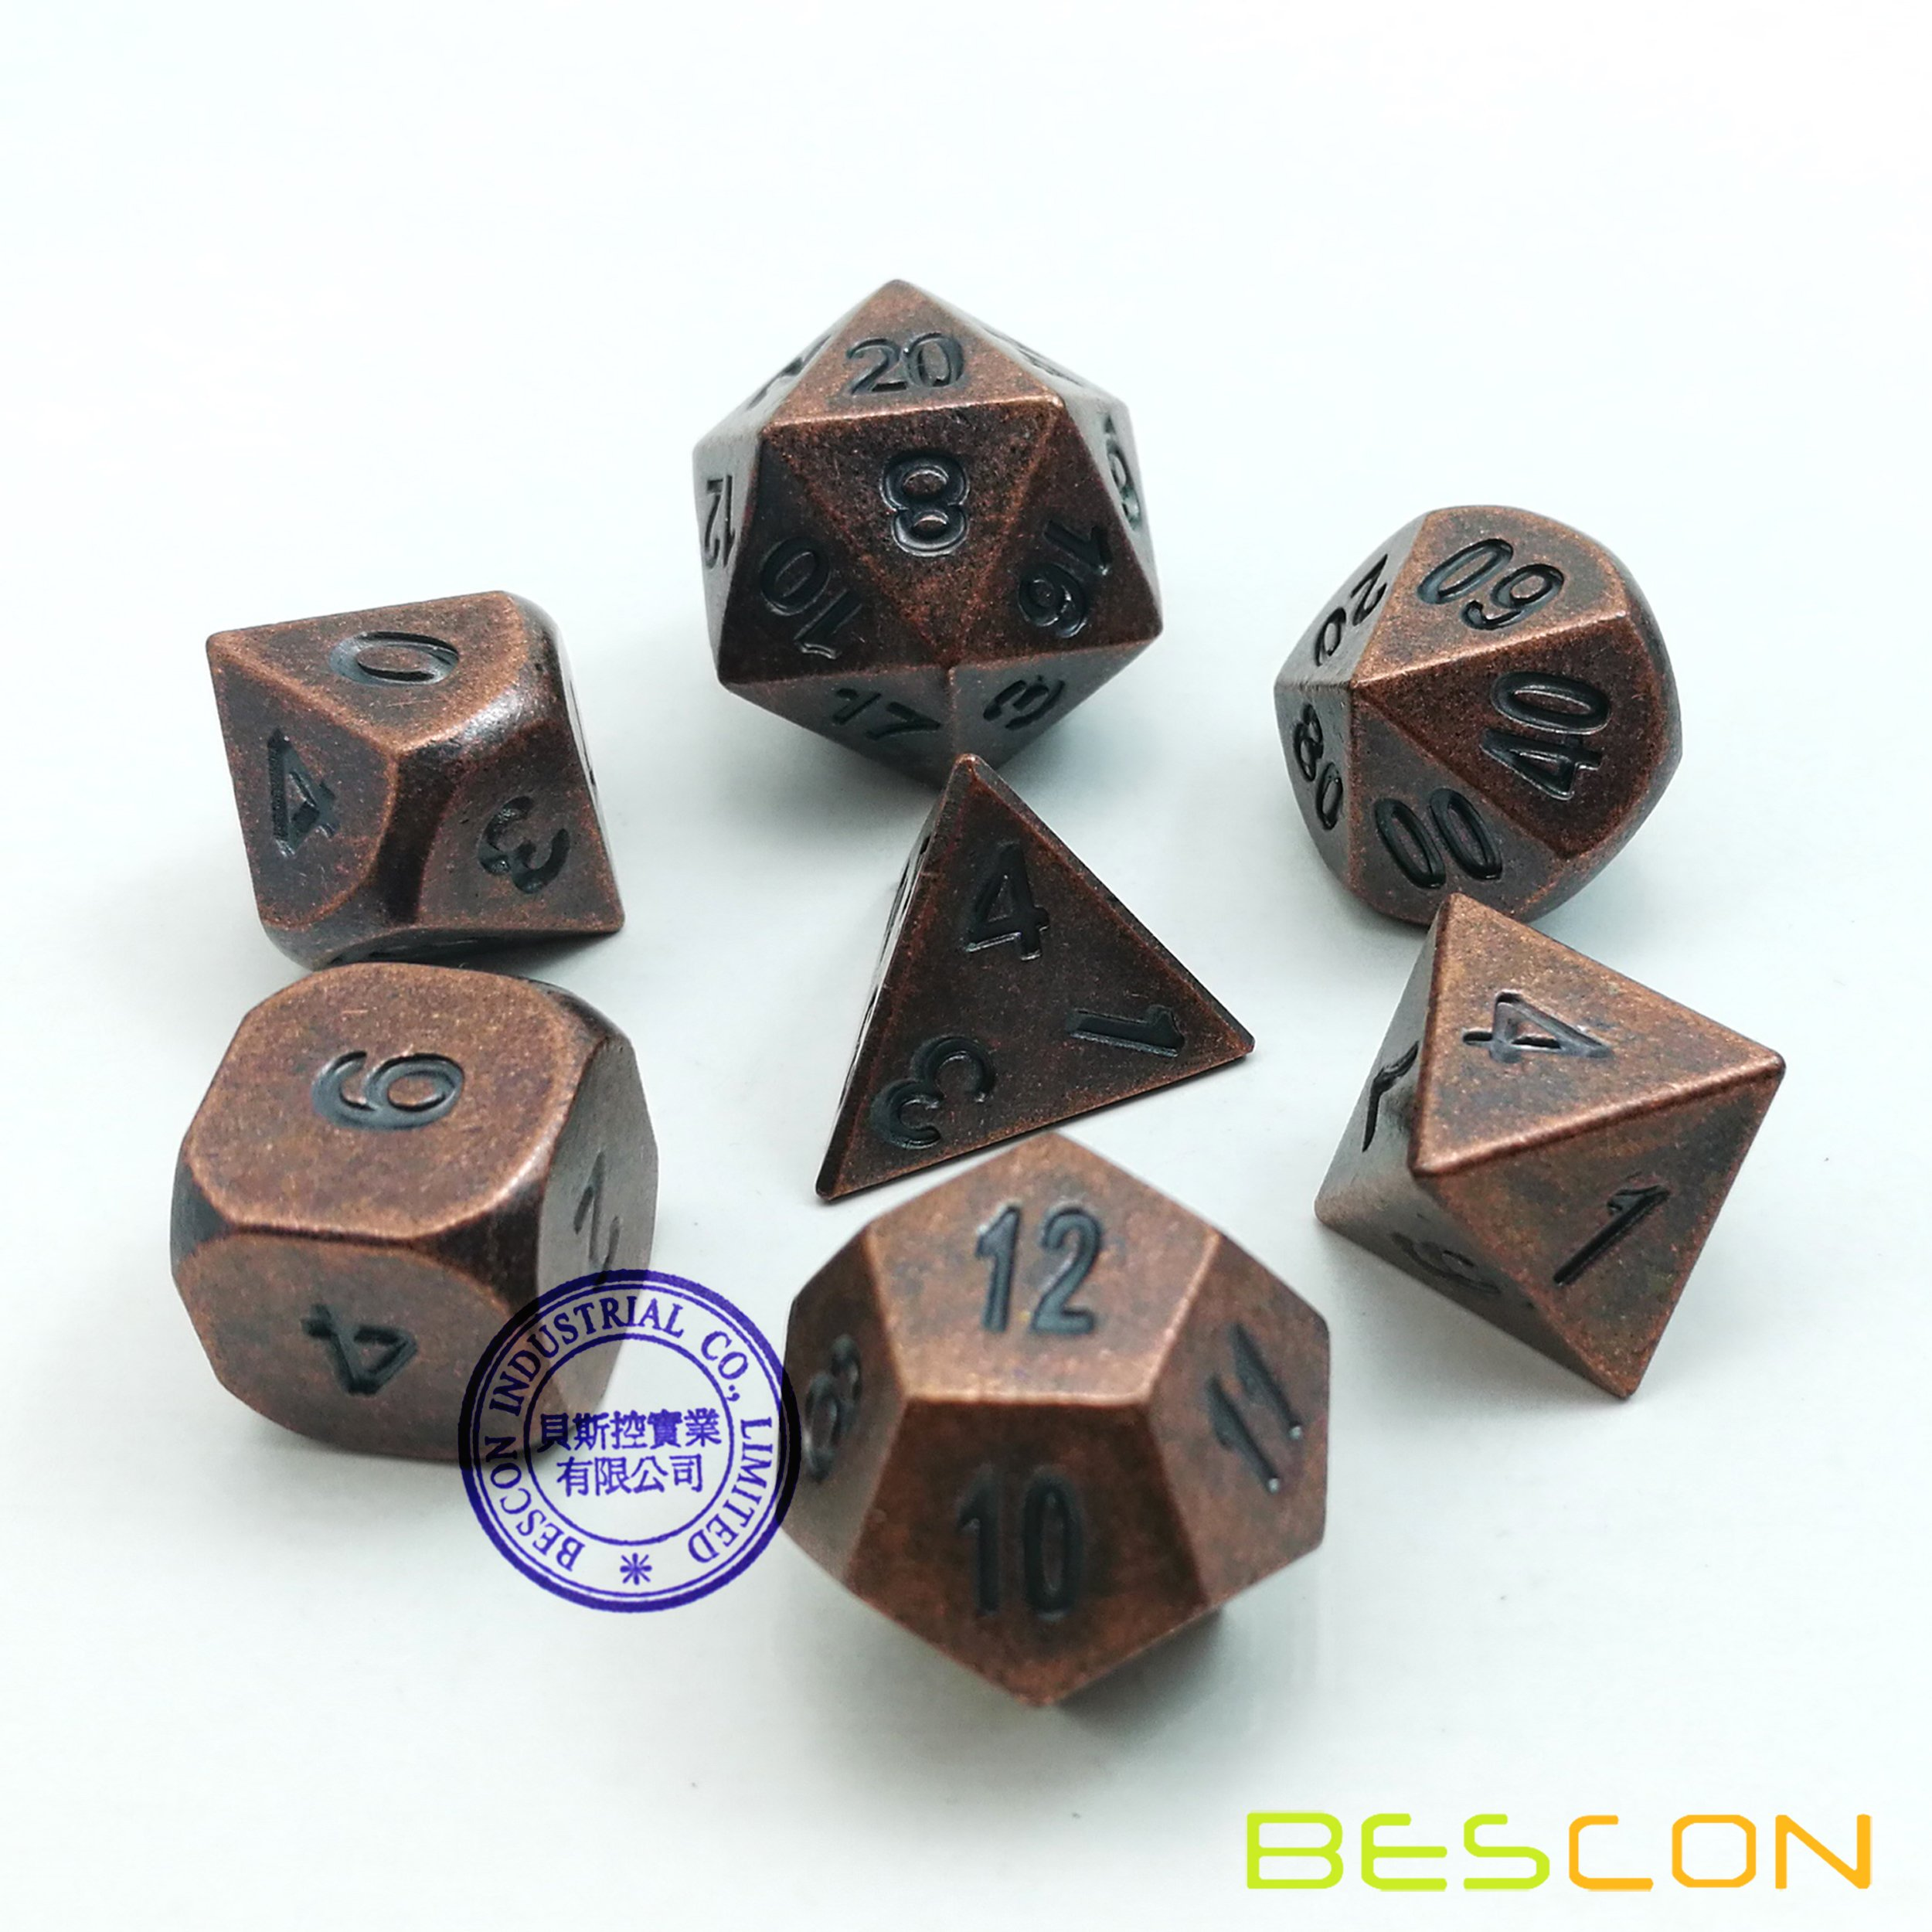 Bescon Antique Copper Solid Metal Polyhedral D&D Dice Set of 7 Old Copper Metal RPG Role Playing Game Dice 7pcs Set by BESCON DICE